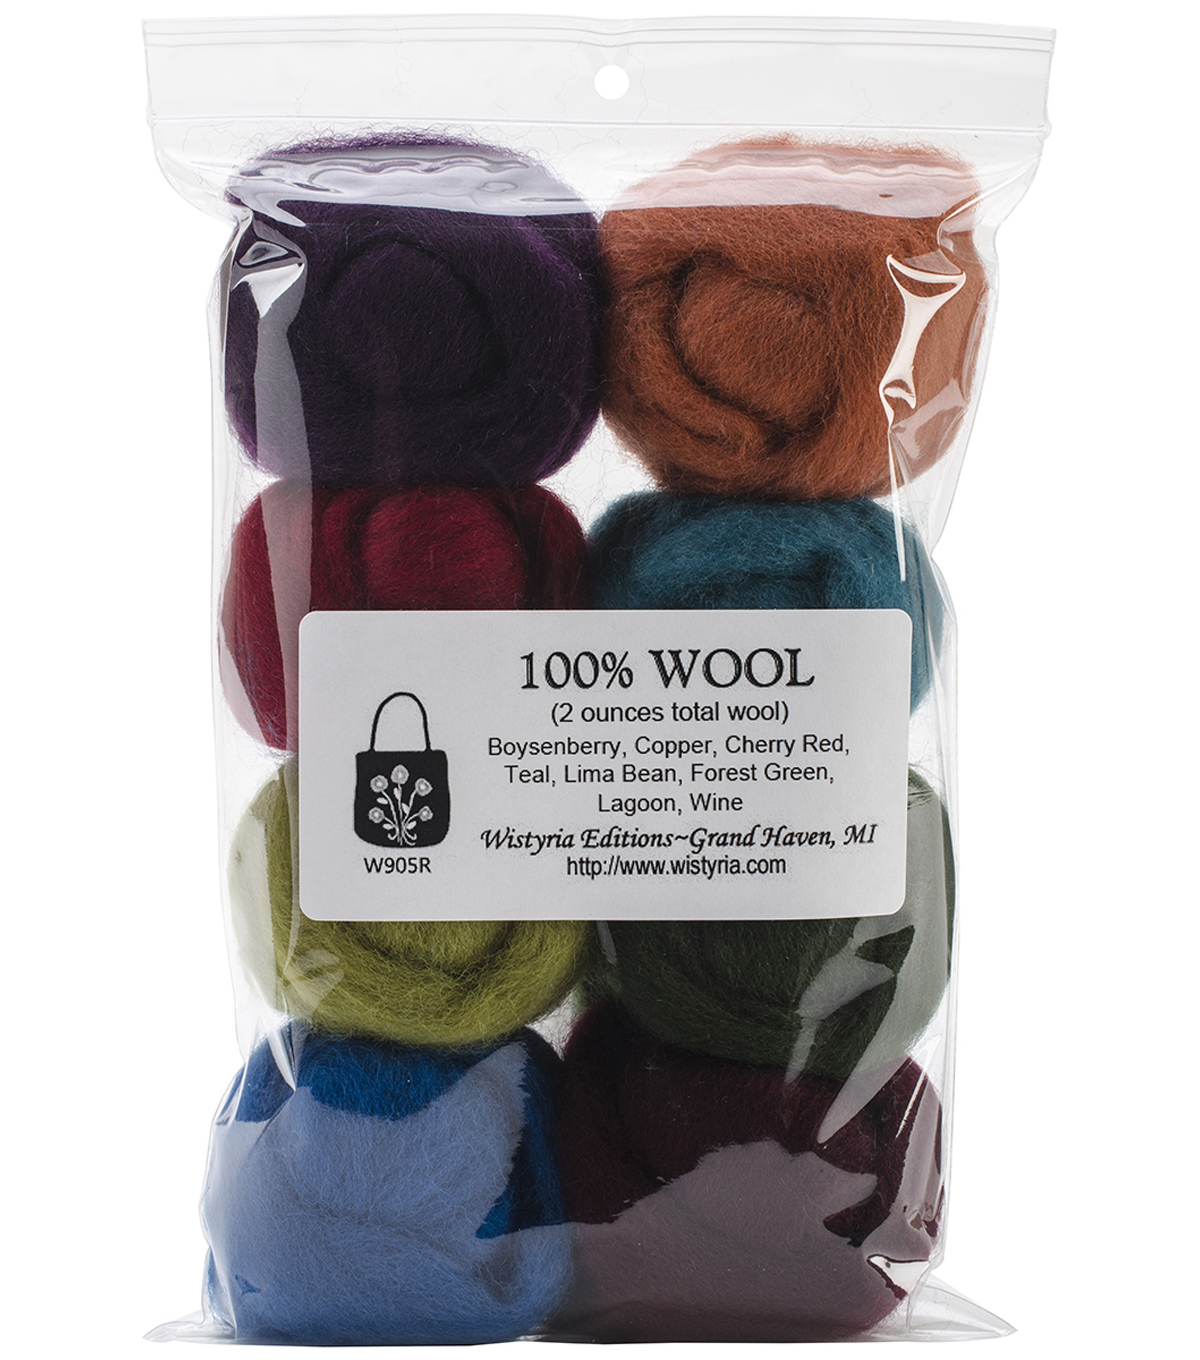 Wistyria Editions The Bouquet Wool Roving Yarn, The Bouquet